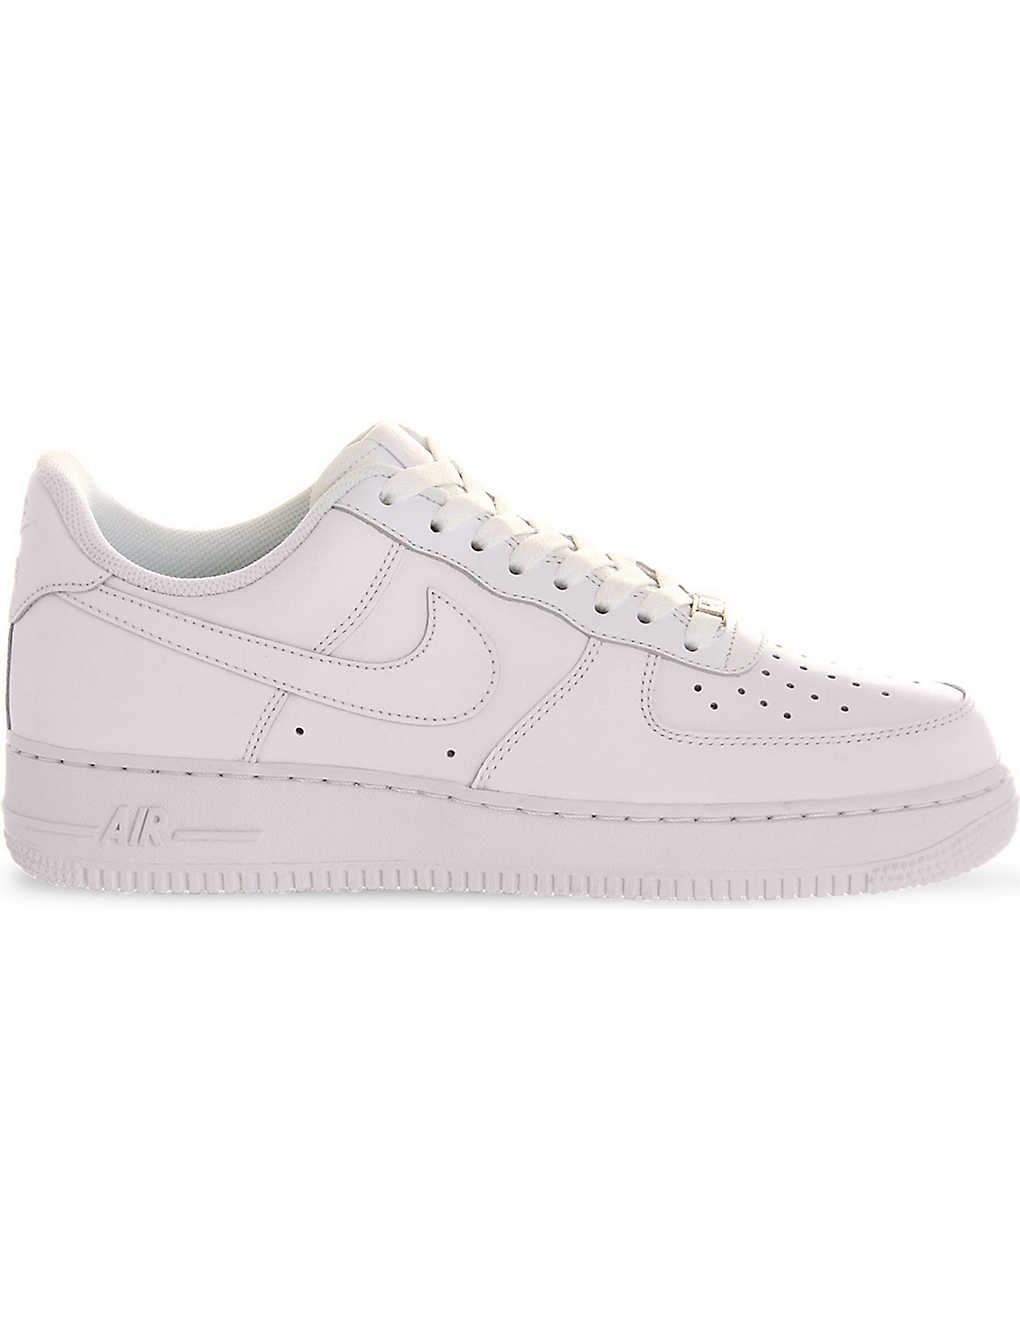 best sneakers cb663 f01f1 NIKE Air force 1 trainers